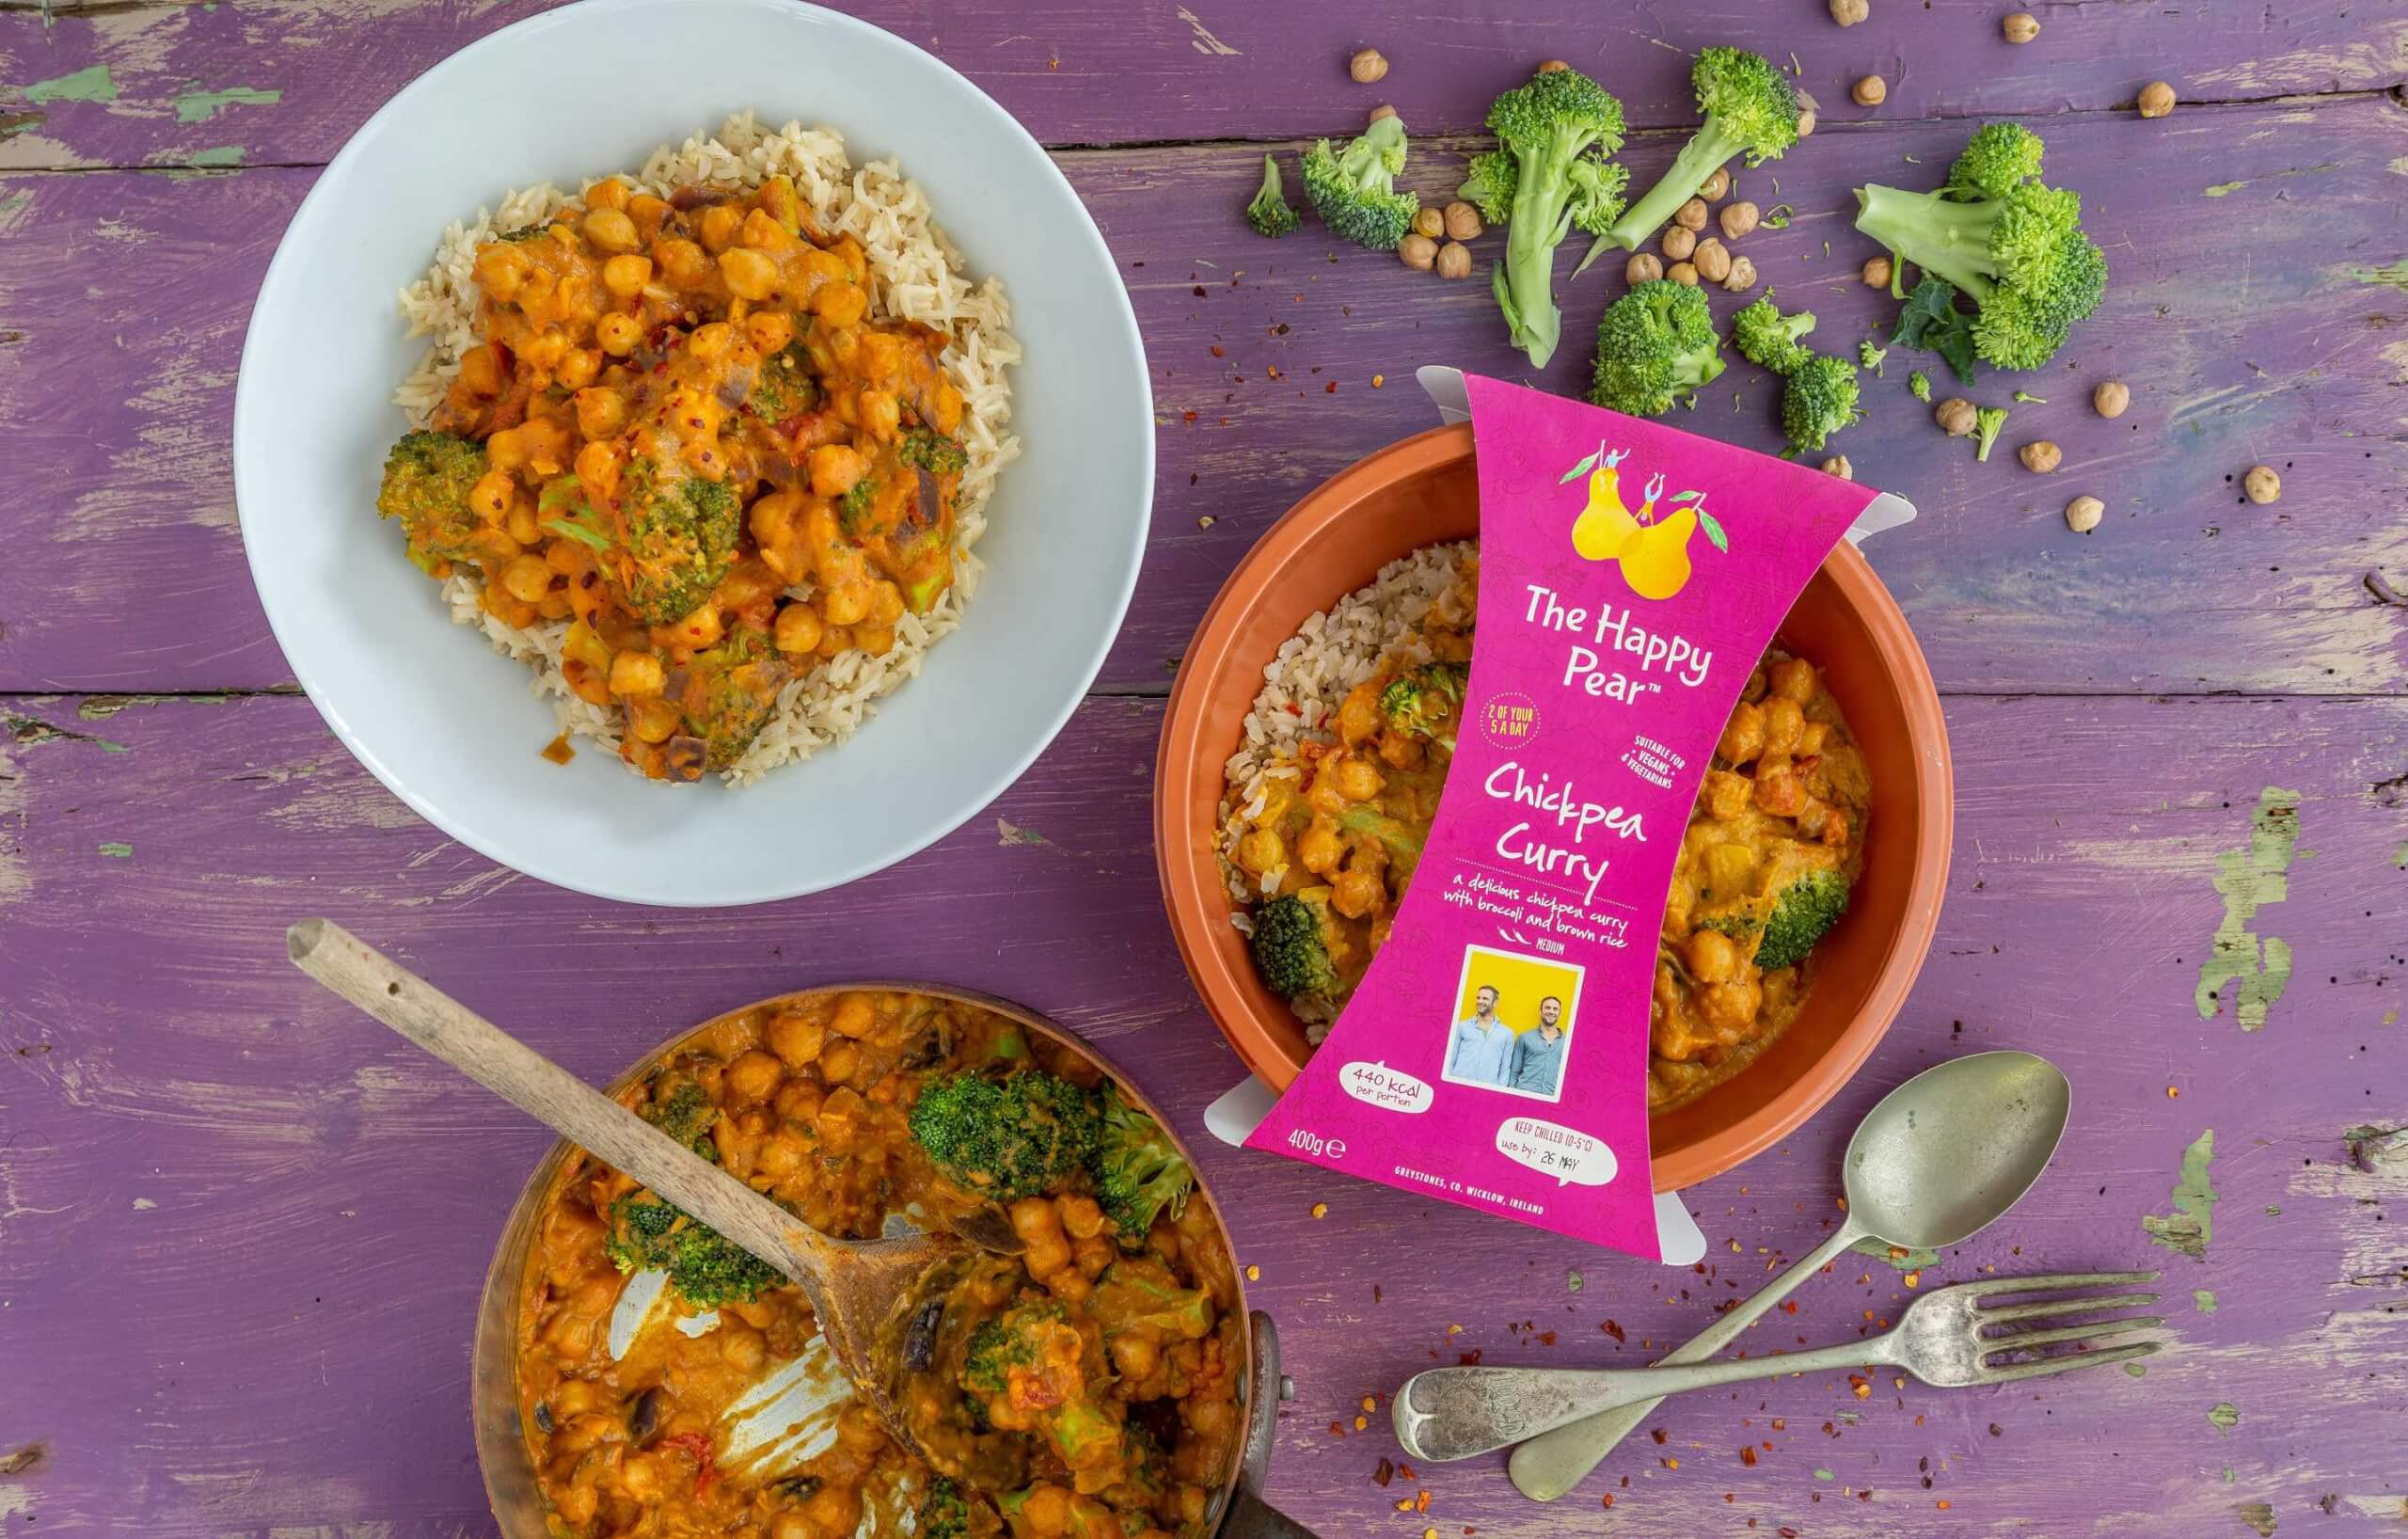 About Time: You Discovered the Best New Vegan Food Products, Best New Vegan Food Products, Best New Vegan Food Products 2018, New Vegan Food Products, Vegan Food Products, Vegan Food Products 2018, best Vegan Food Products